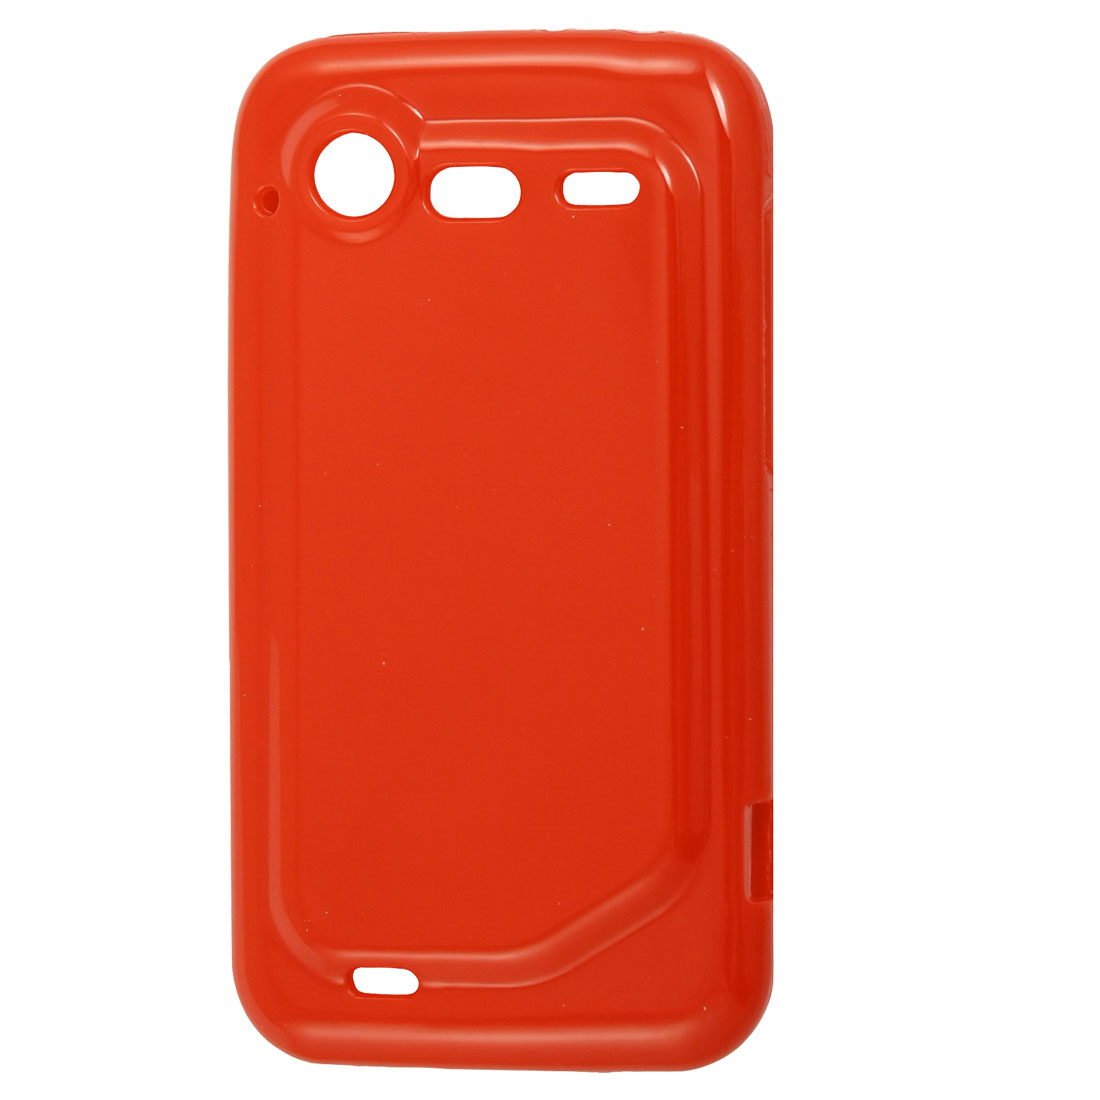 Red Soft Plastic Protective Cover for HTC Incredible S G11 S710e